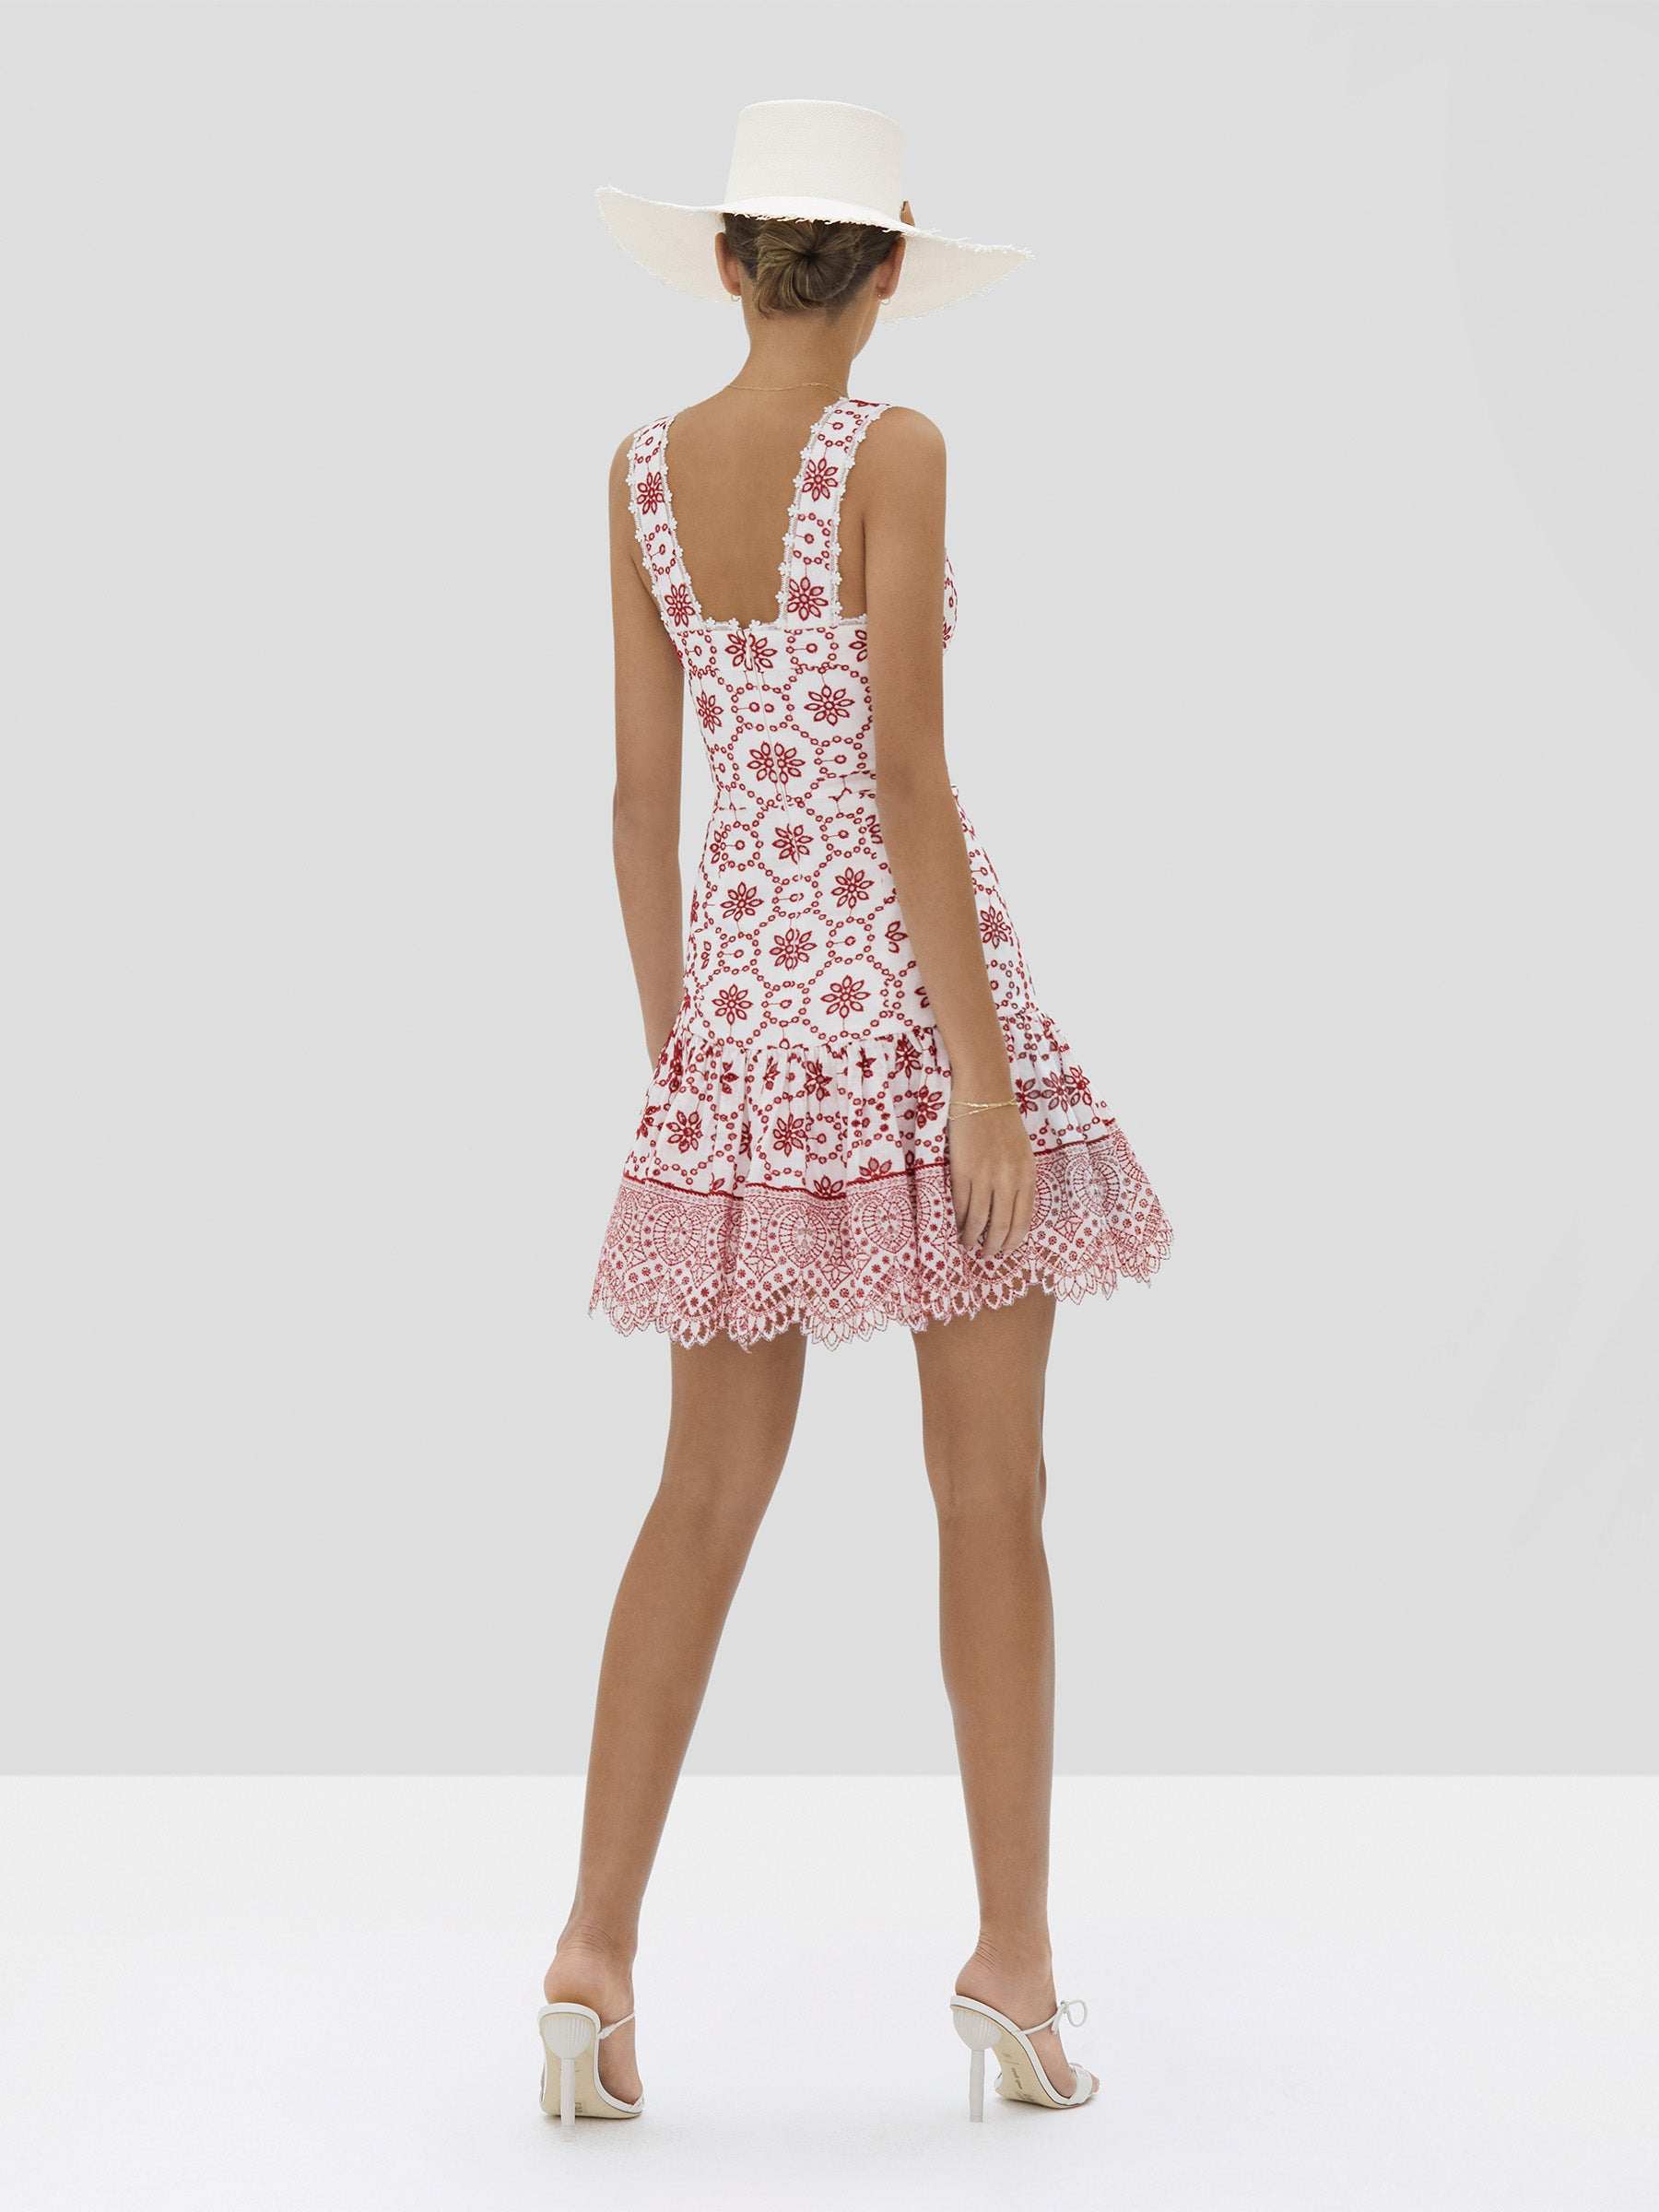 The Villa Dress in Berry Eyelet Embroidery from the Spring Summer 2020 - Rear View